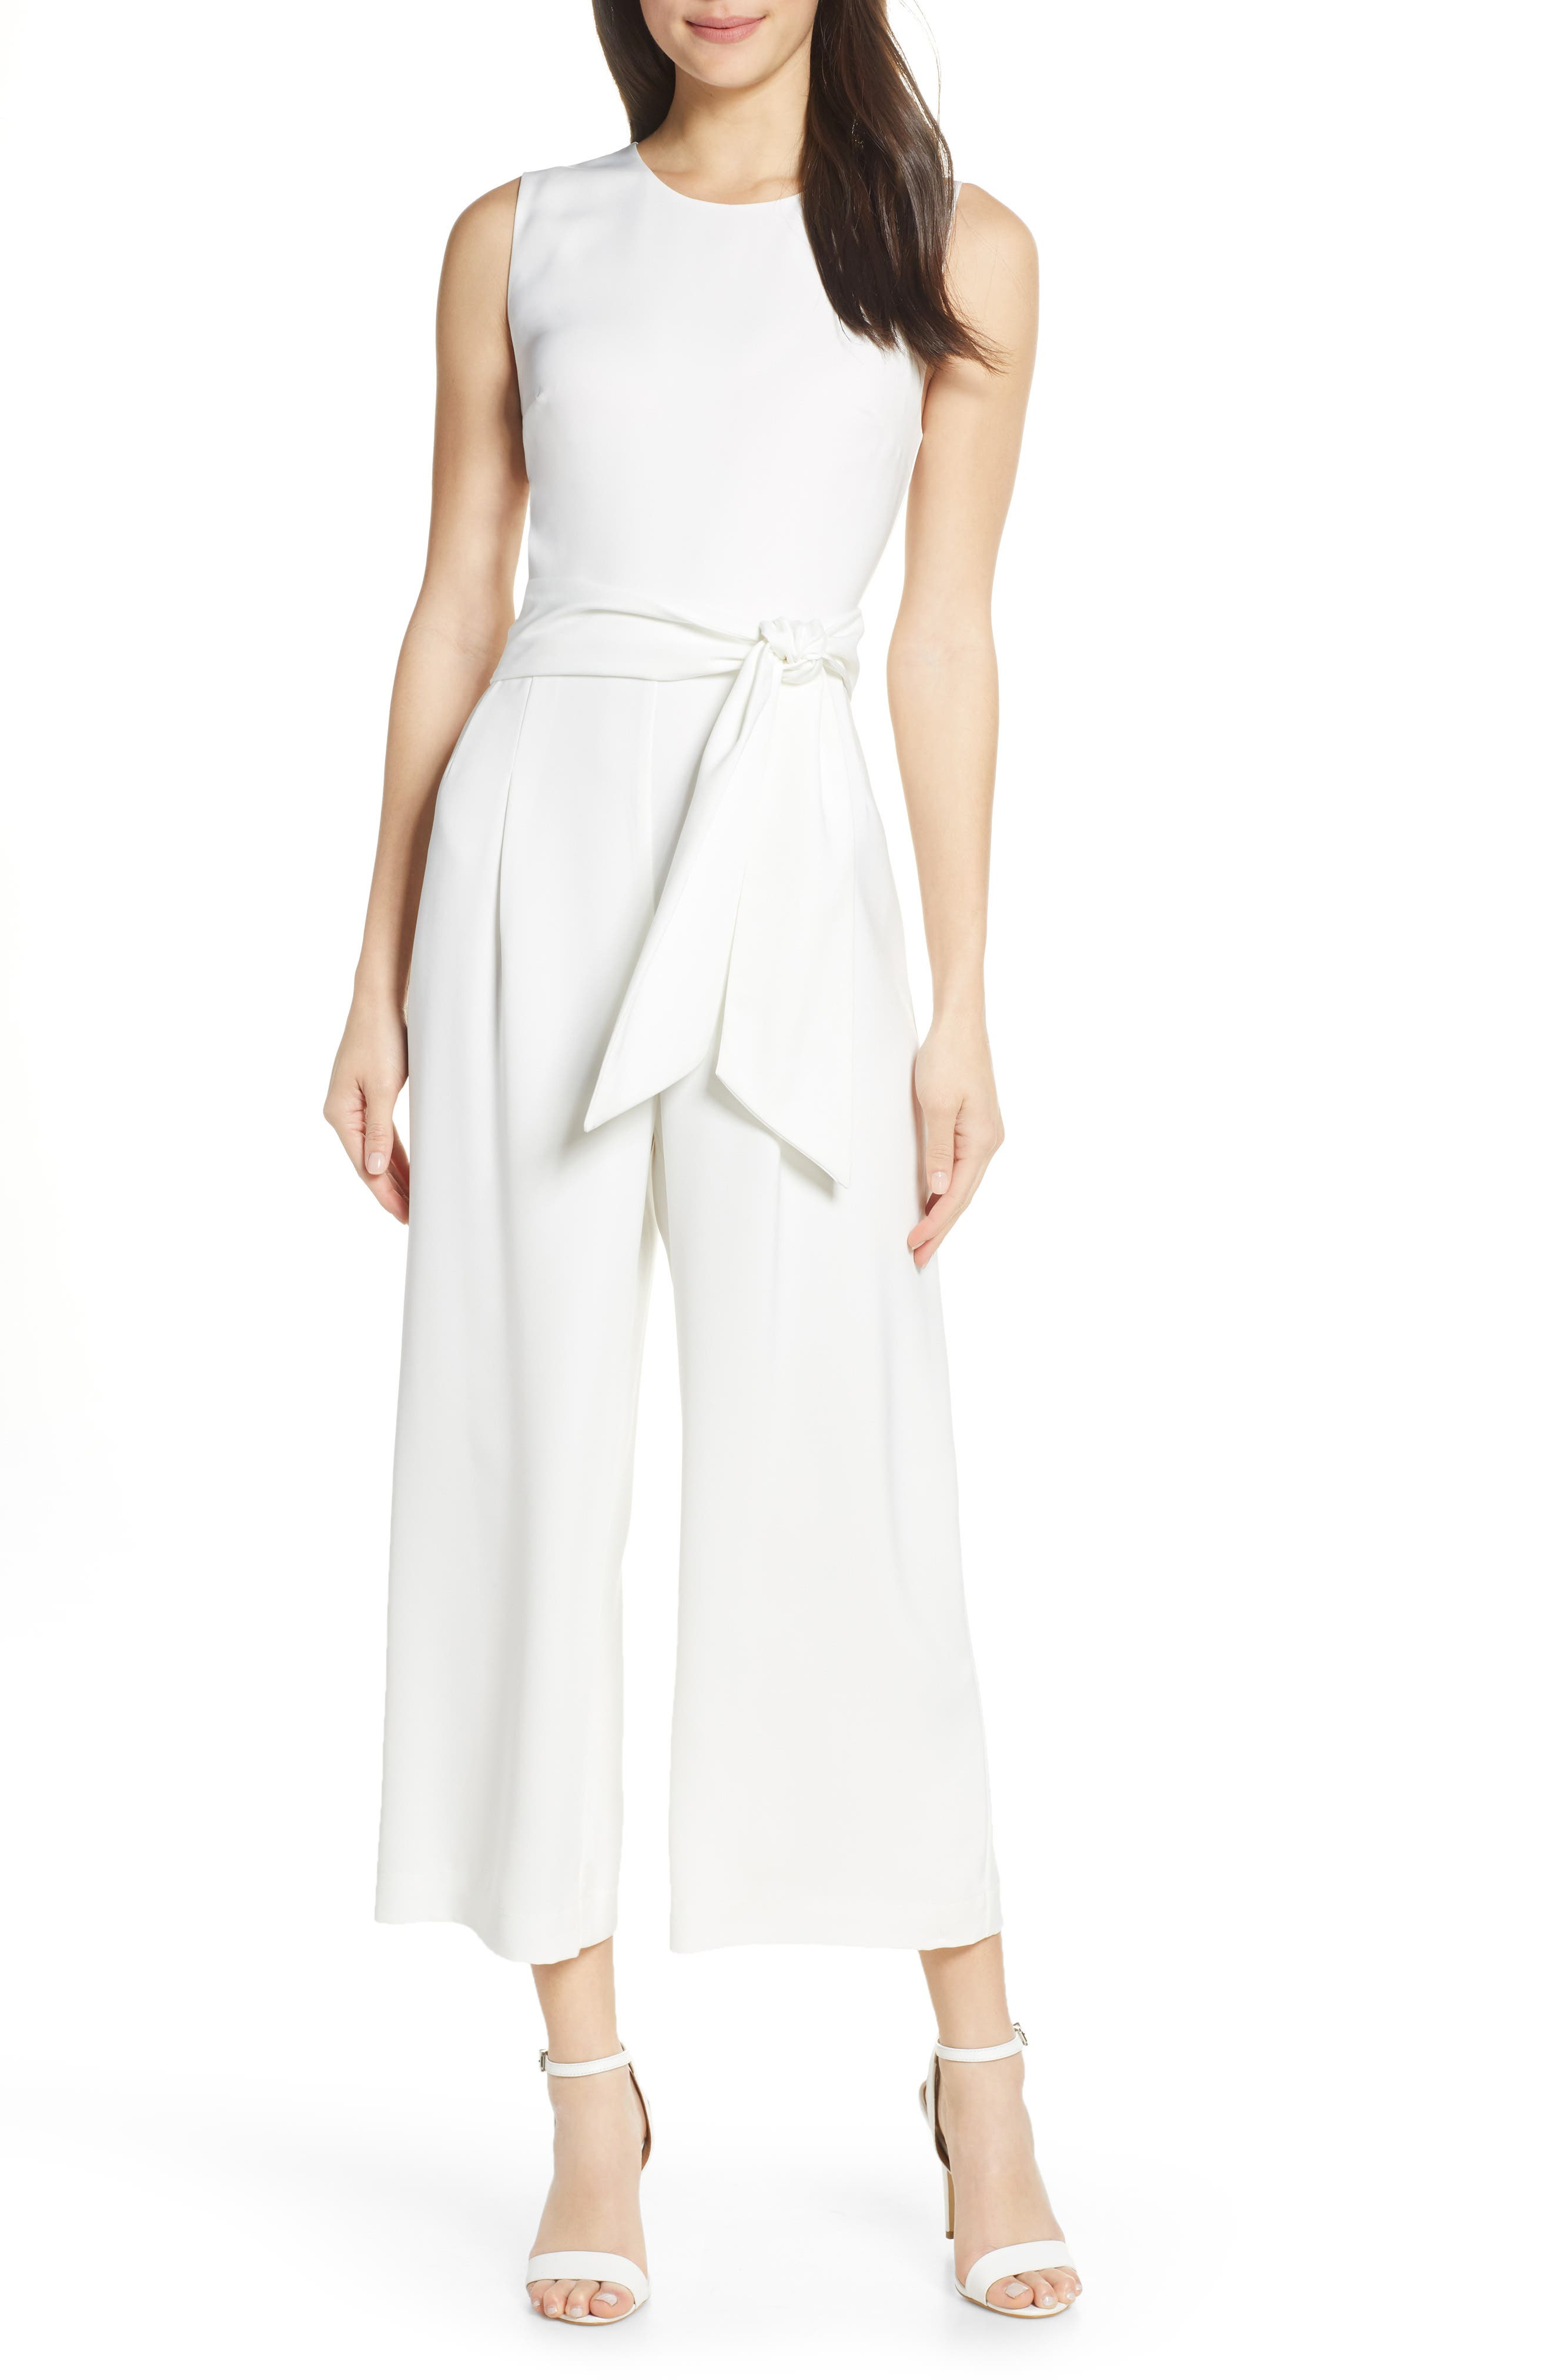 CHARLES HENRY, Sleeveless Culotte Jumpsuit, Main thumbnail 1, color, IVORY